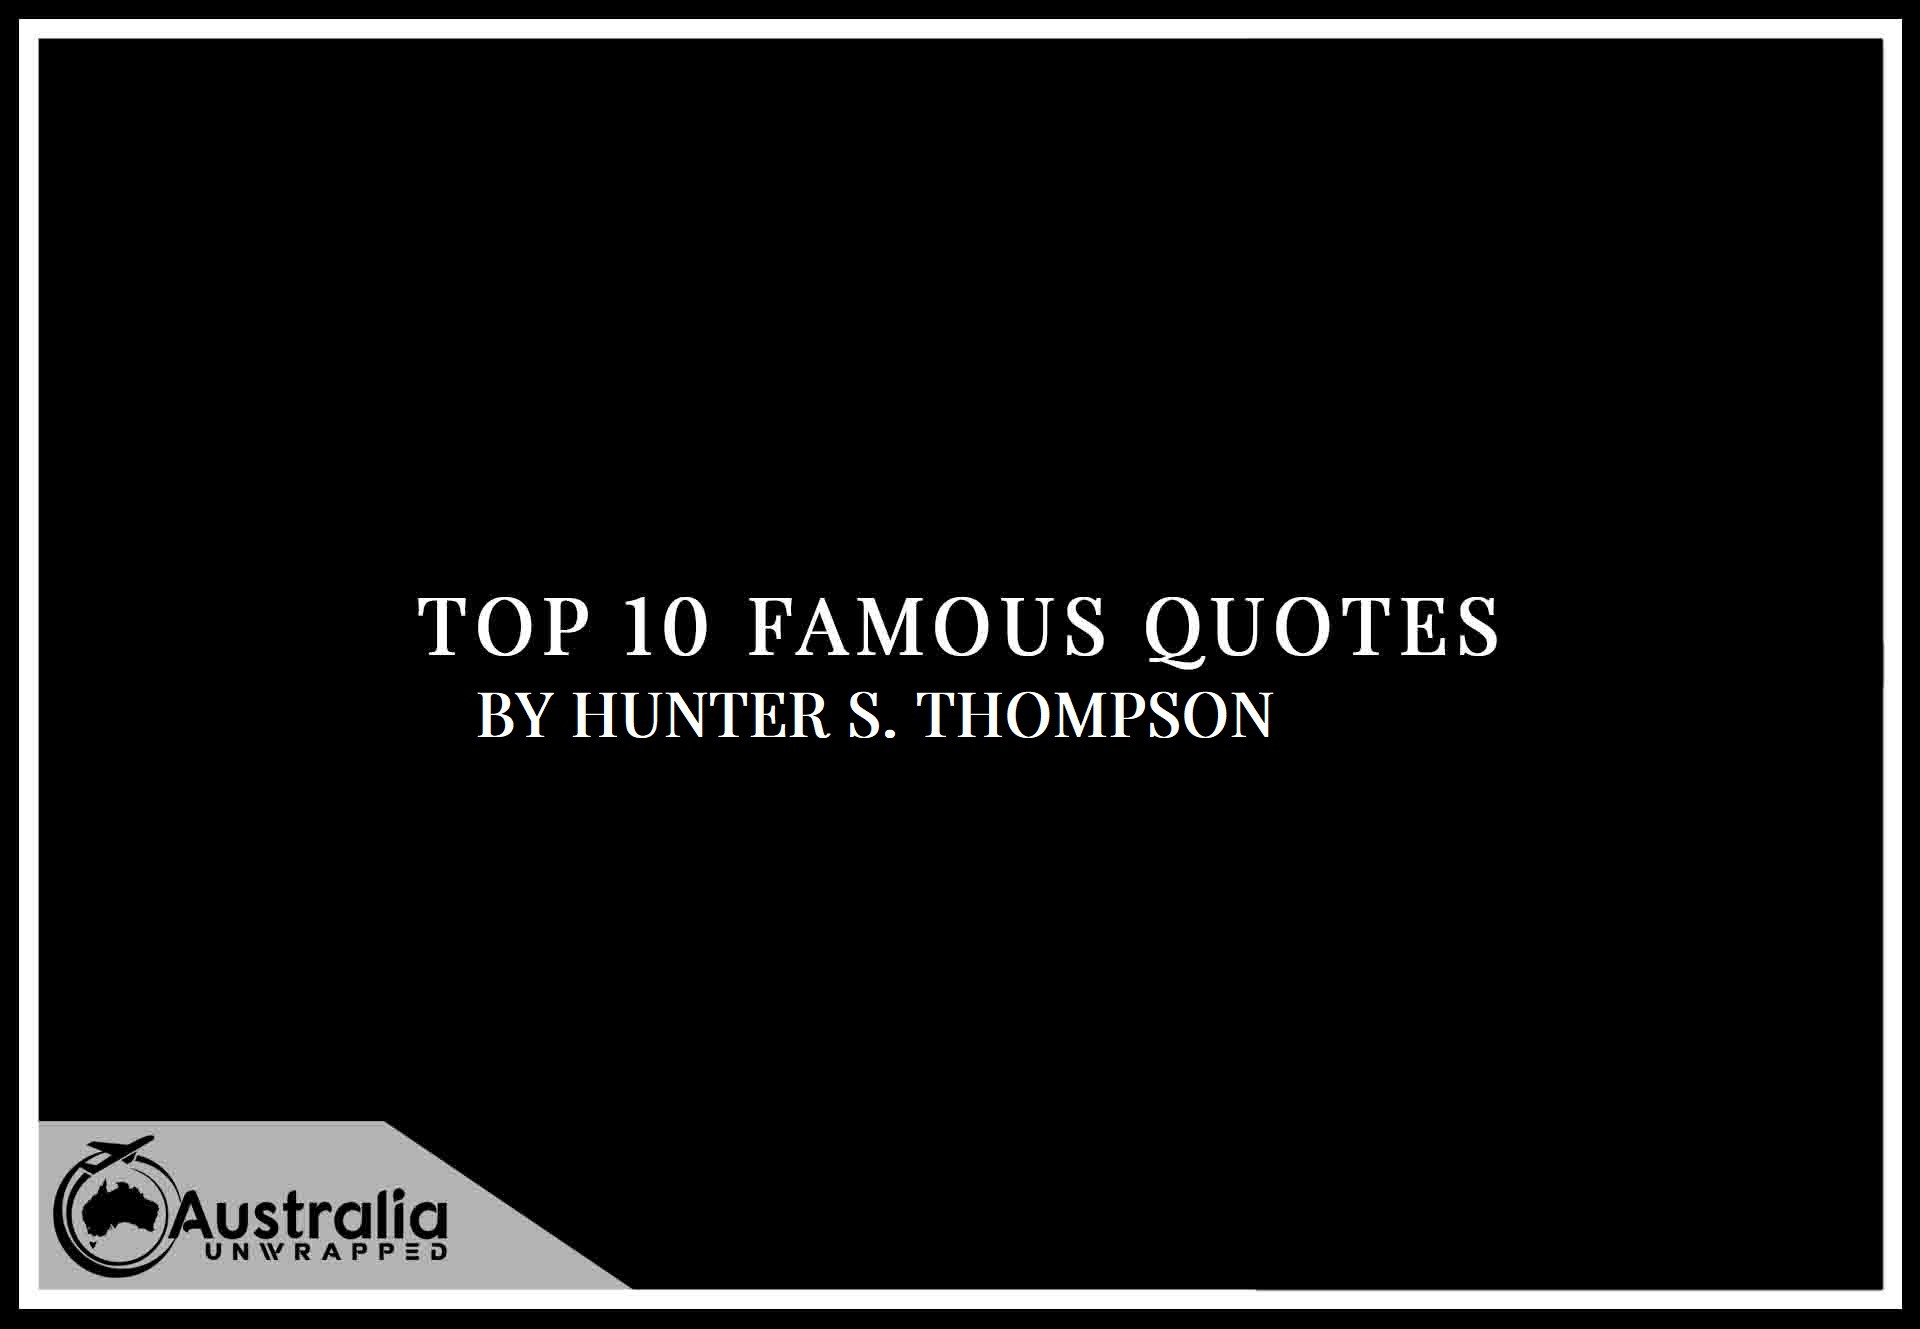 Top 10 Famous Quotes by Author Hunter S. Thompson